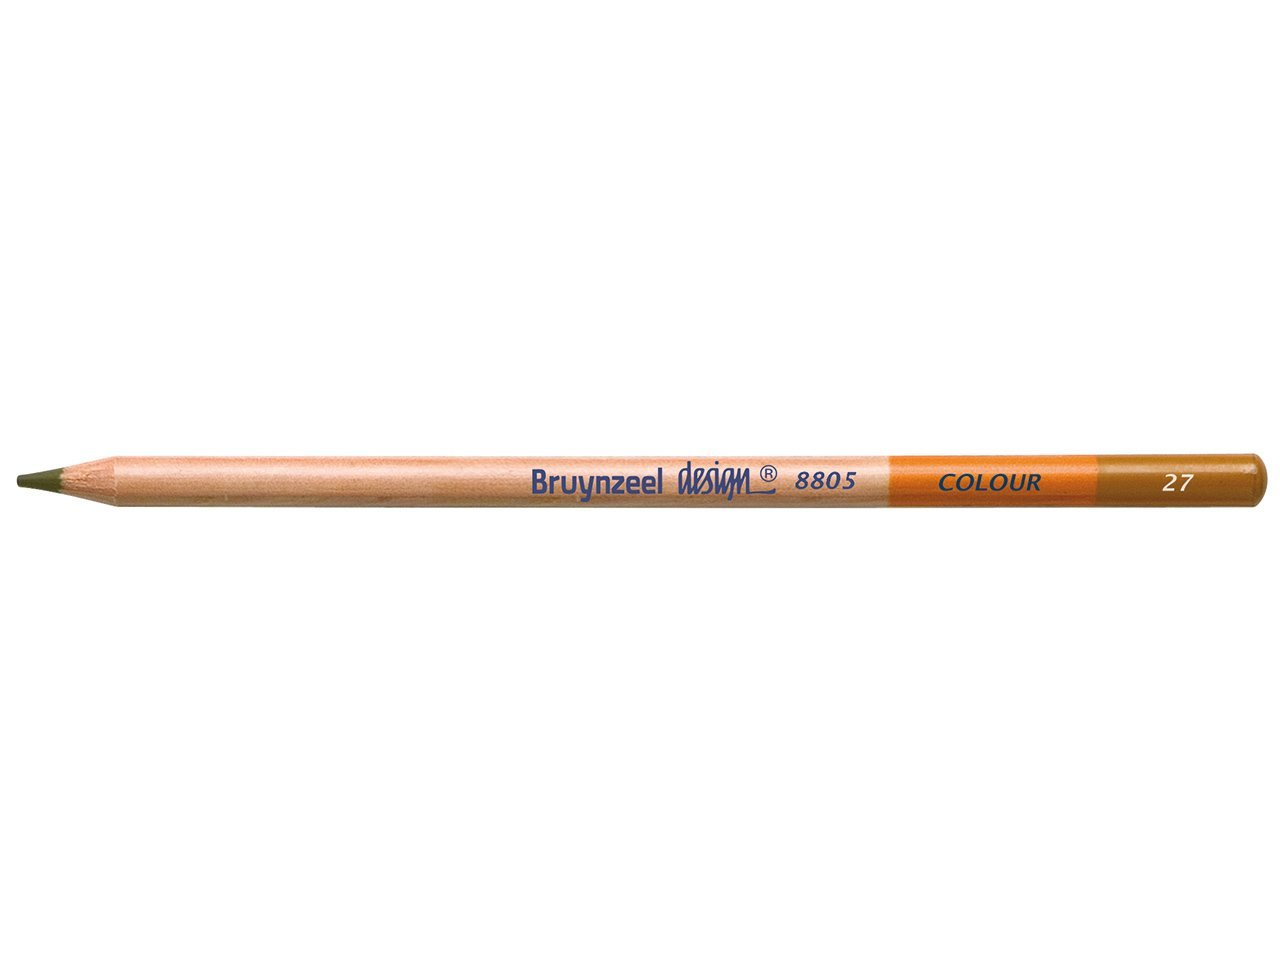 Bruynzeel Pencil - 27 Yellow Ochre